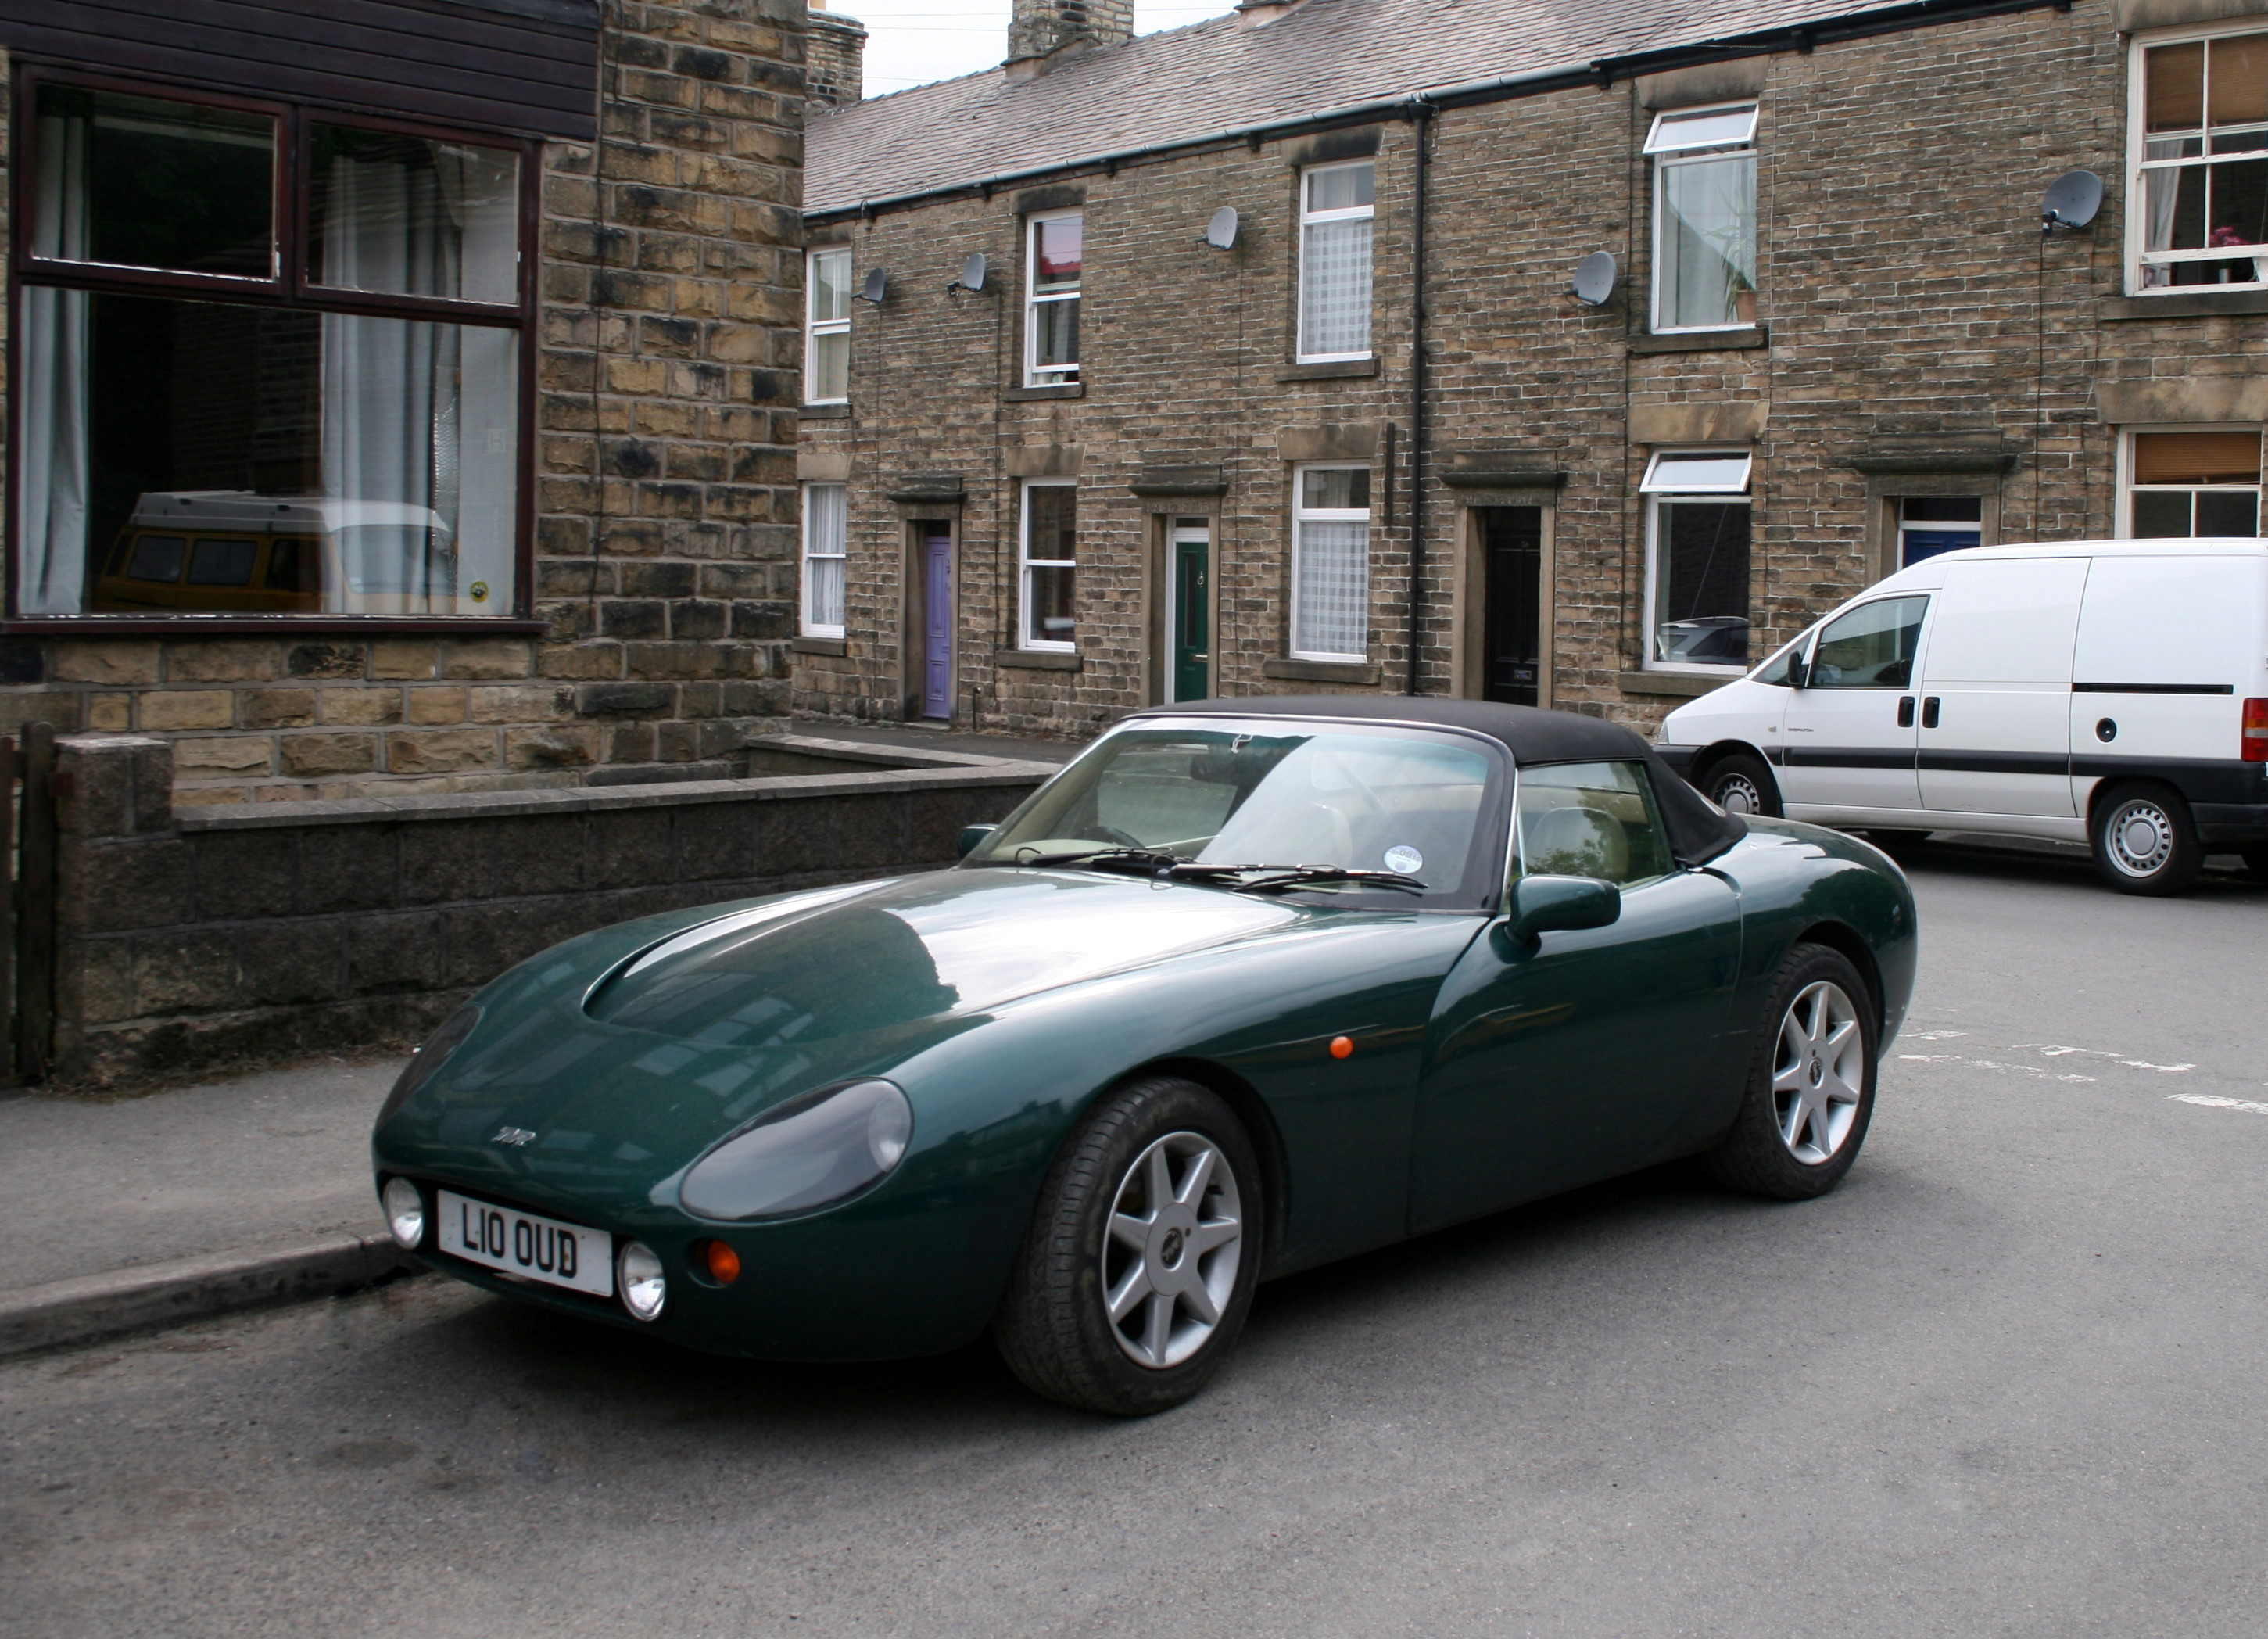 1996 TVR Griffith #26